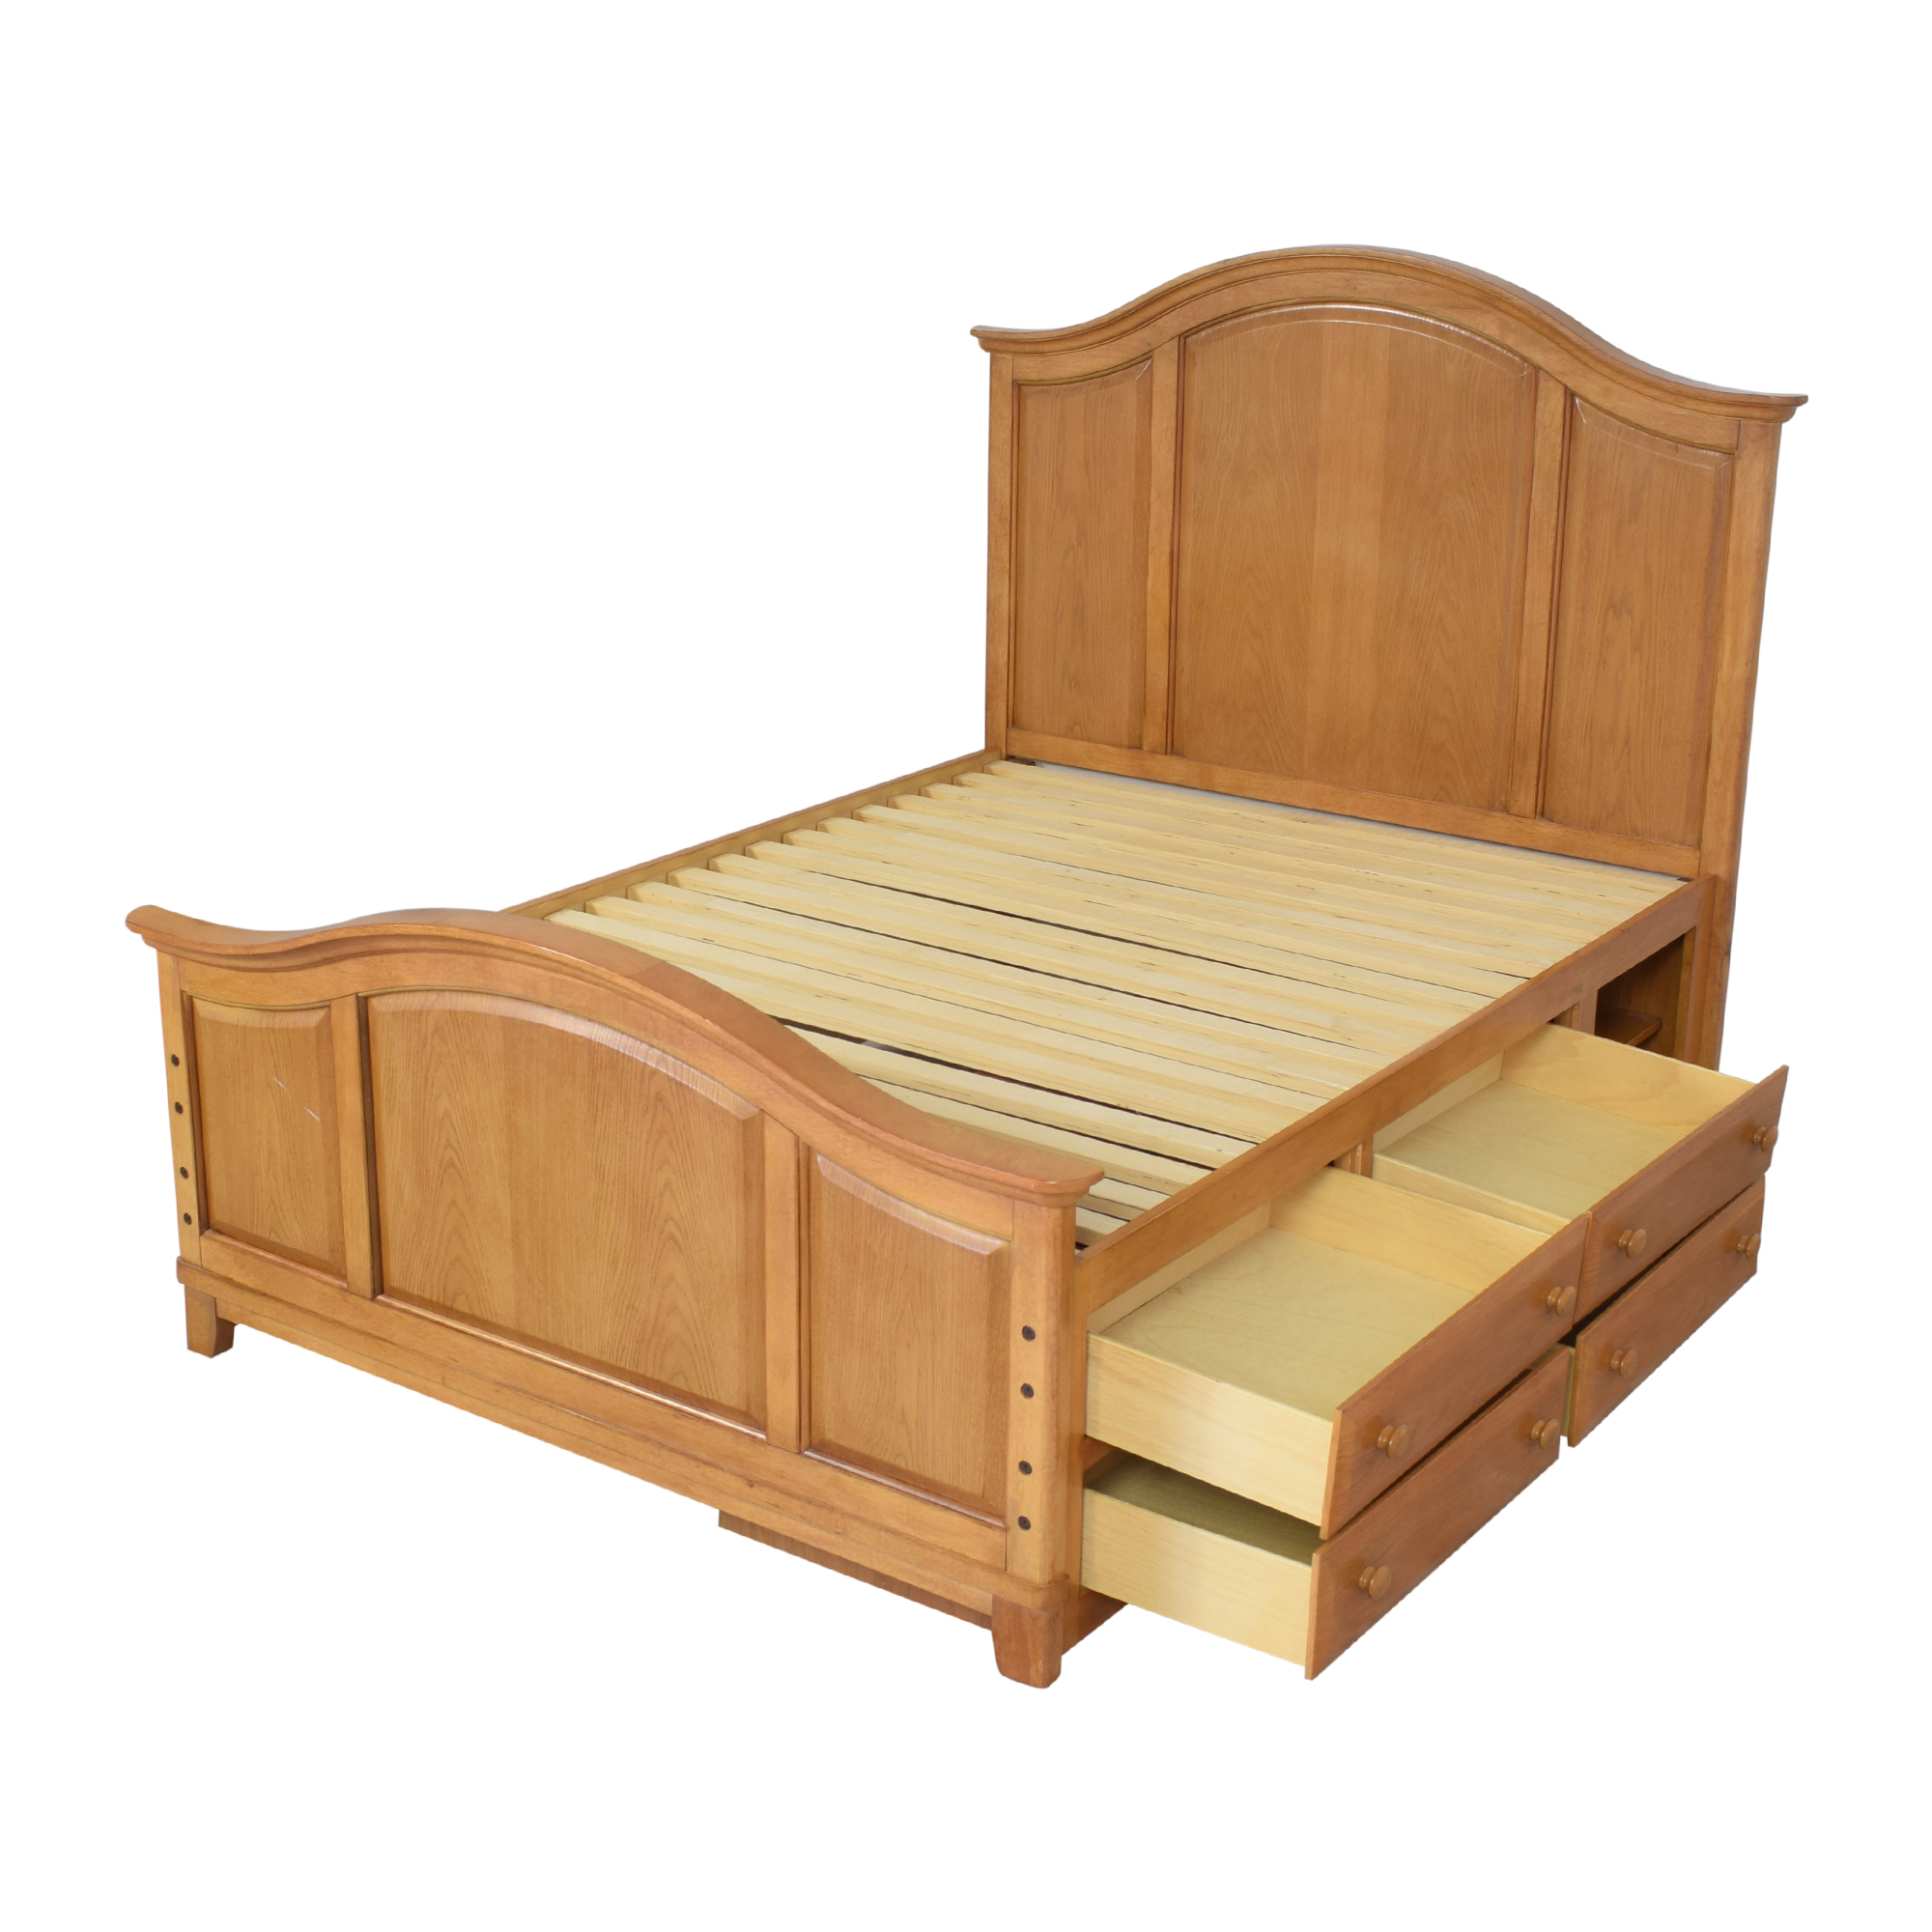 Raymour & Flanigan Full Bed with Storage sale